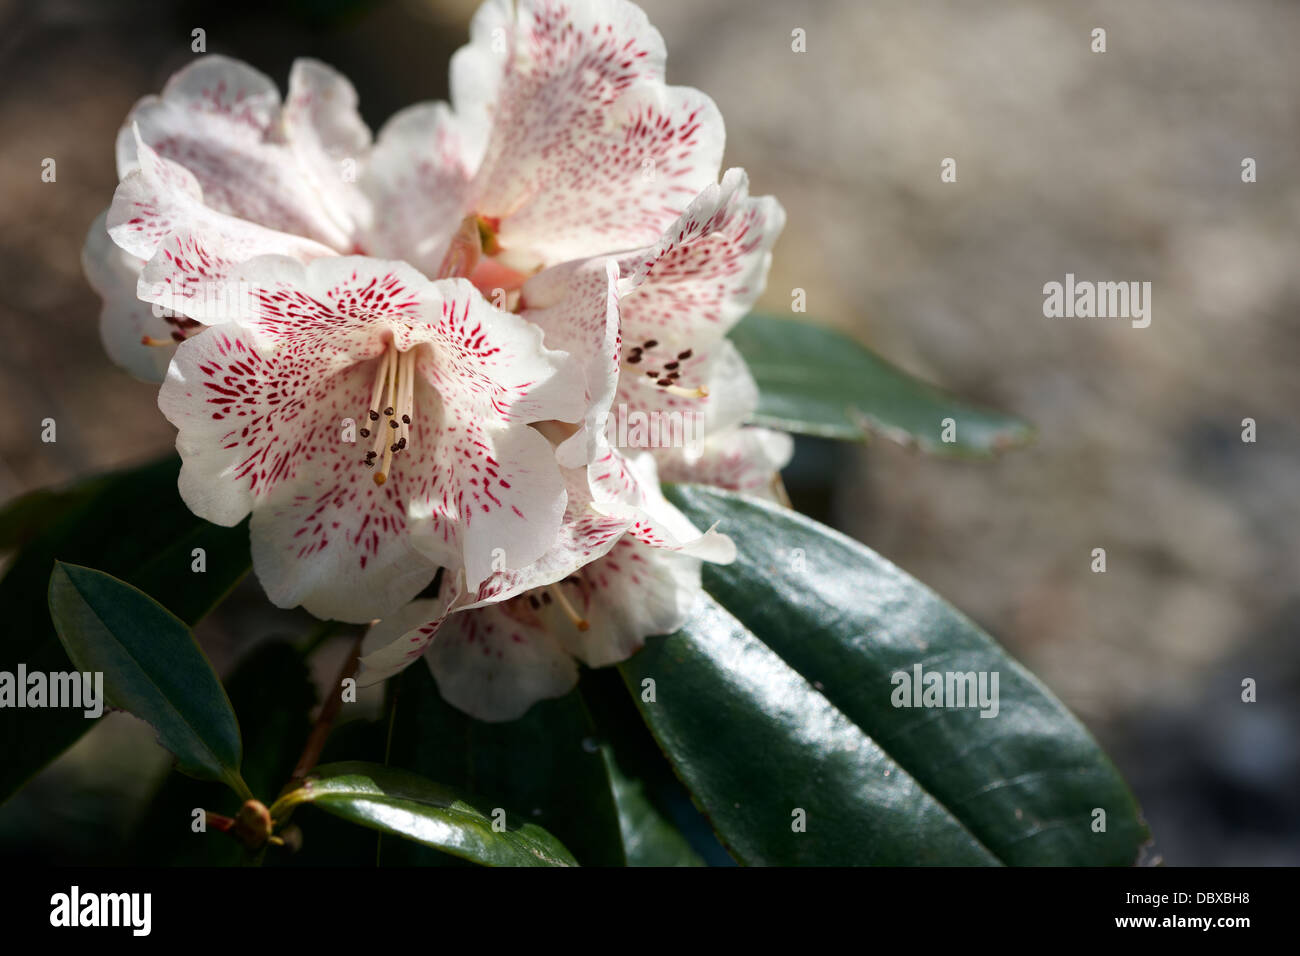 Rhododendron 'Hille' - Stock Image